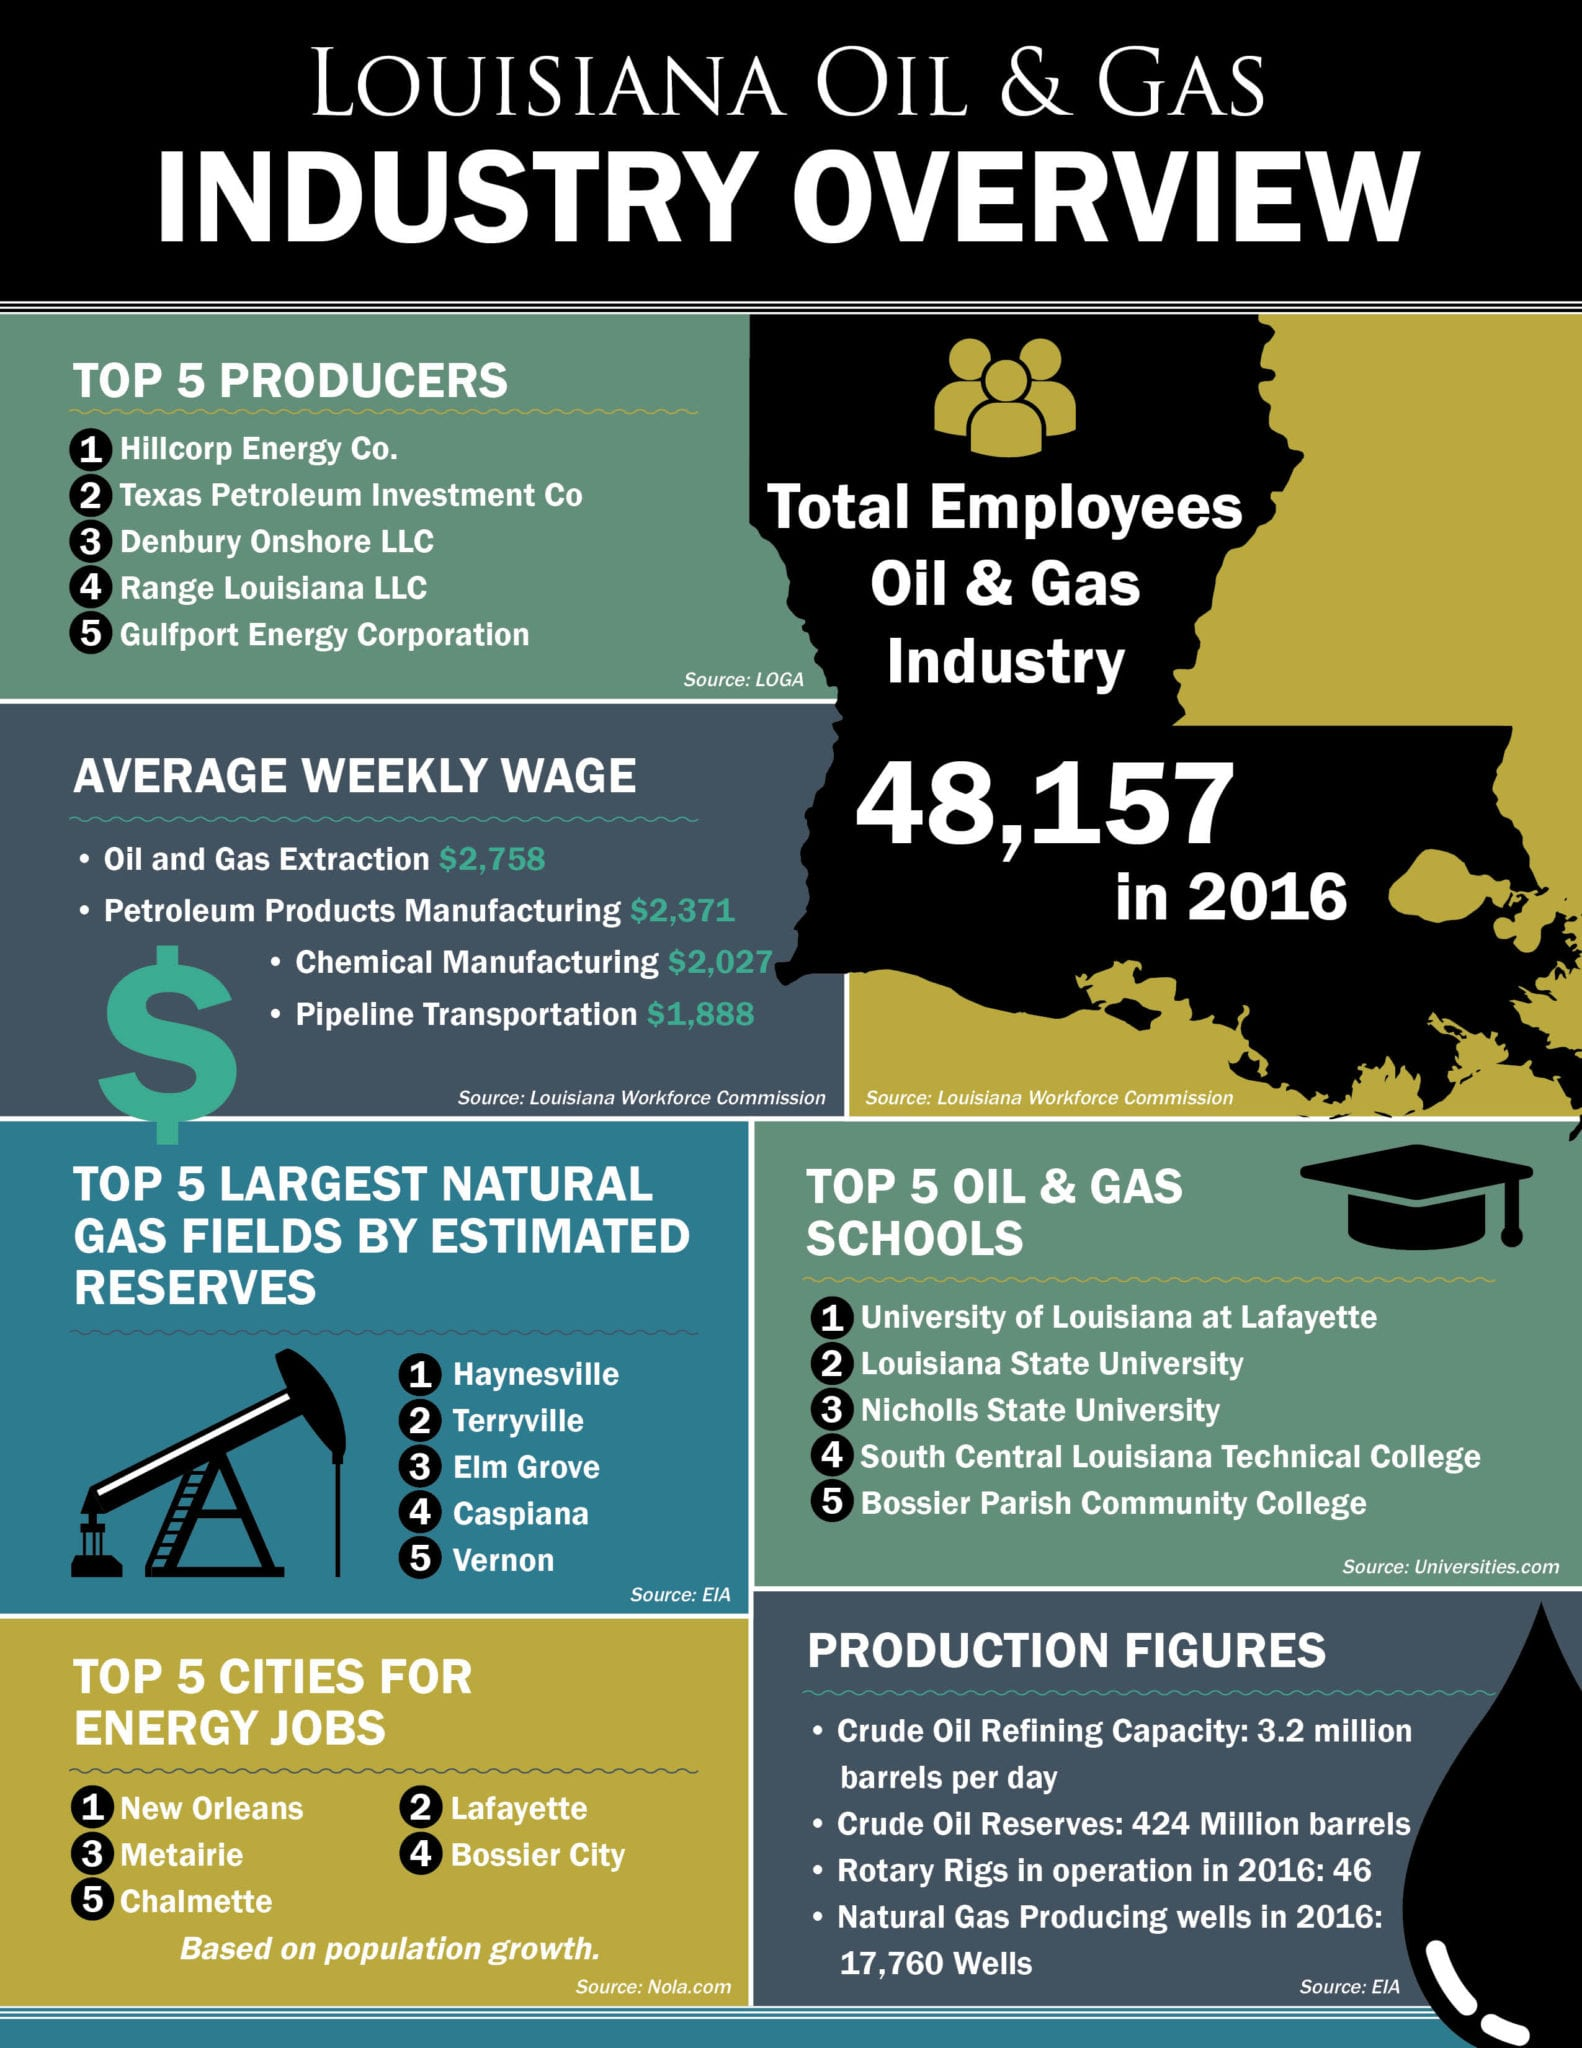 Louisiana Oil & Gas INDUSTRY OVERVIEW